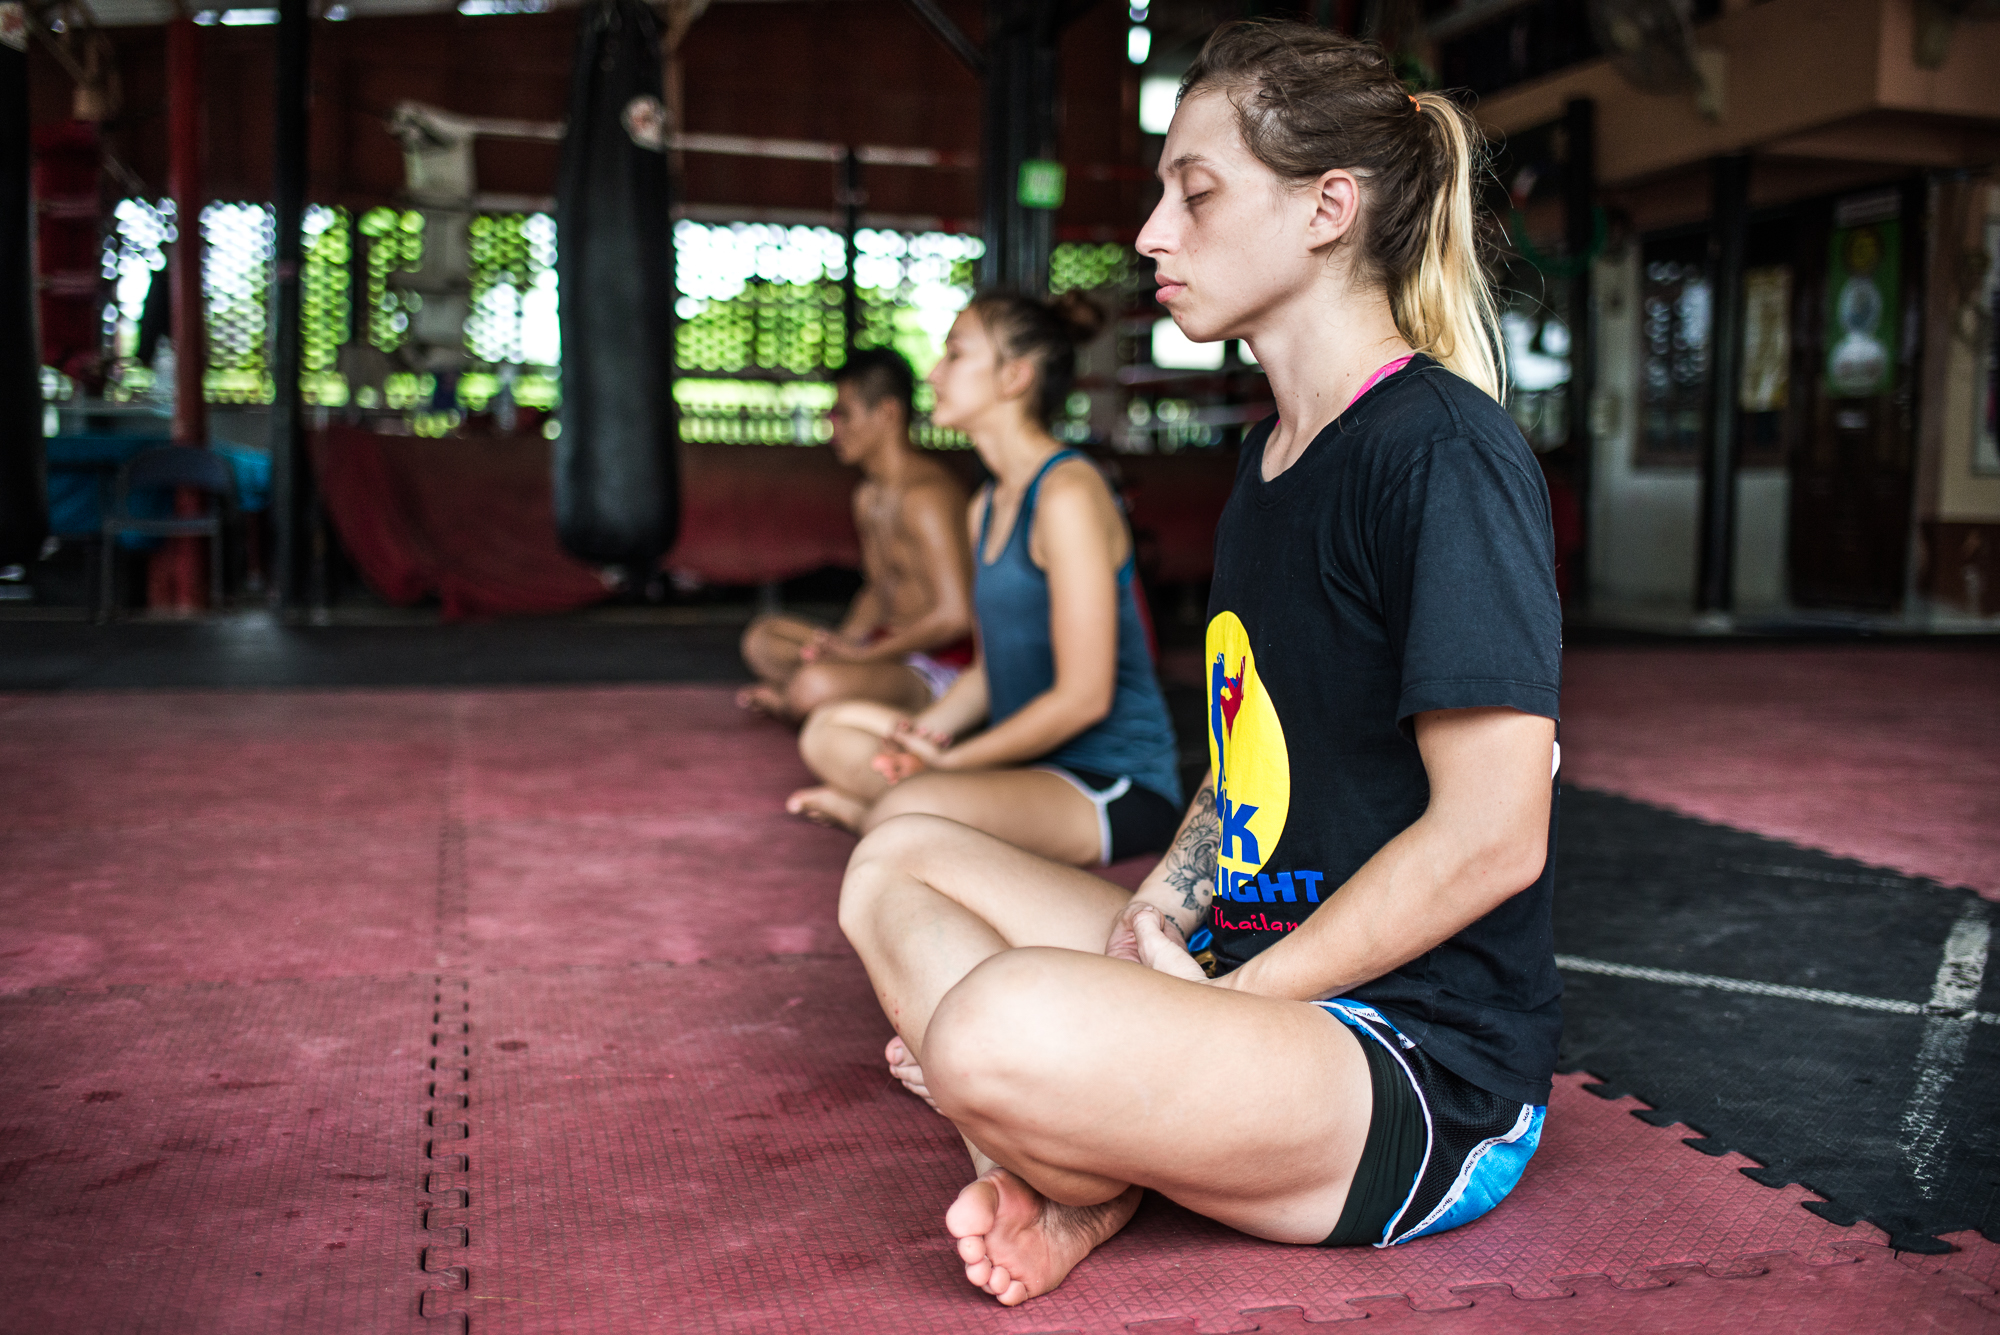 Luktupfah_Camp_Training-29.jpg